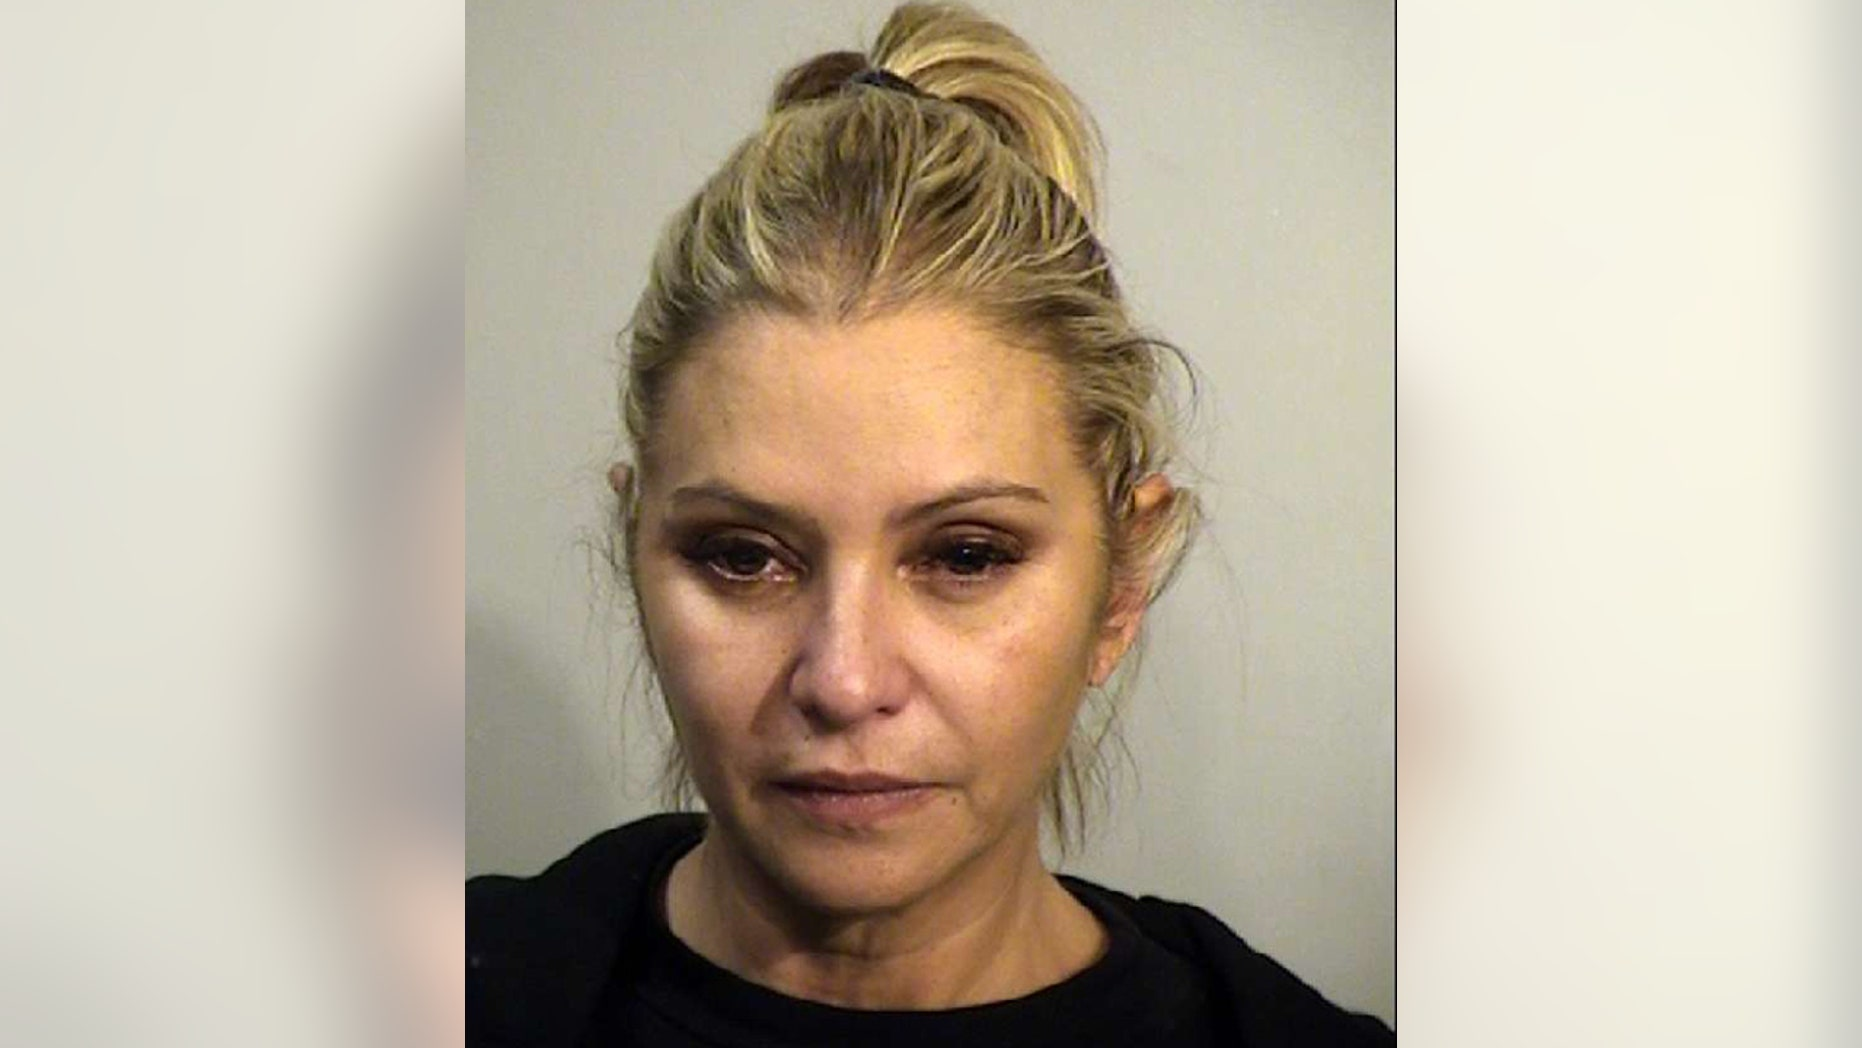 Actress Danielle Arellano was arrested for allegedly shoplifting.